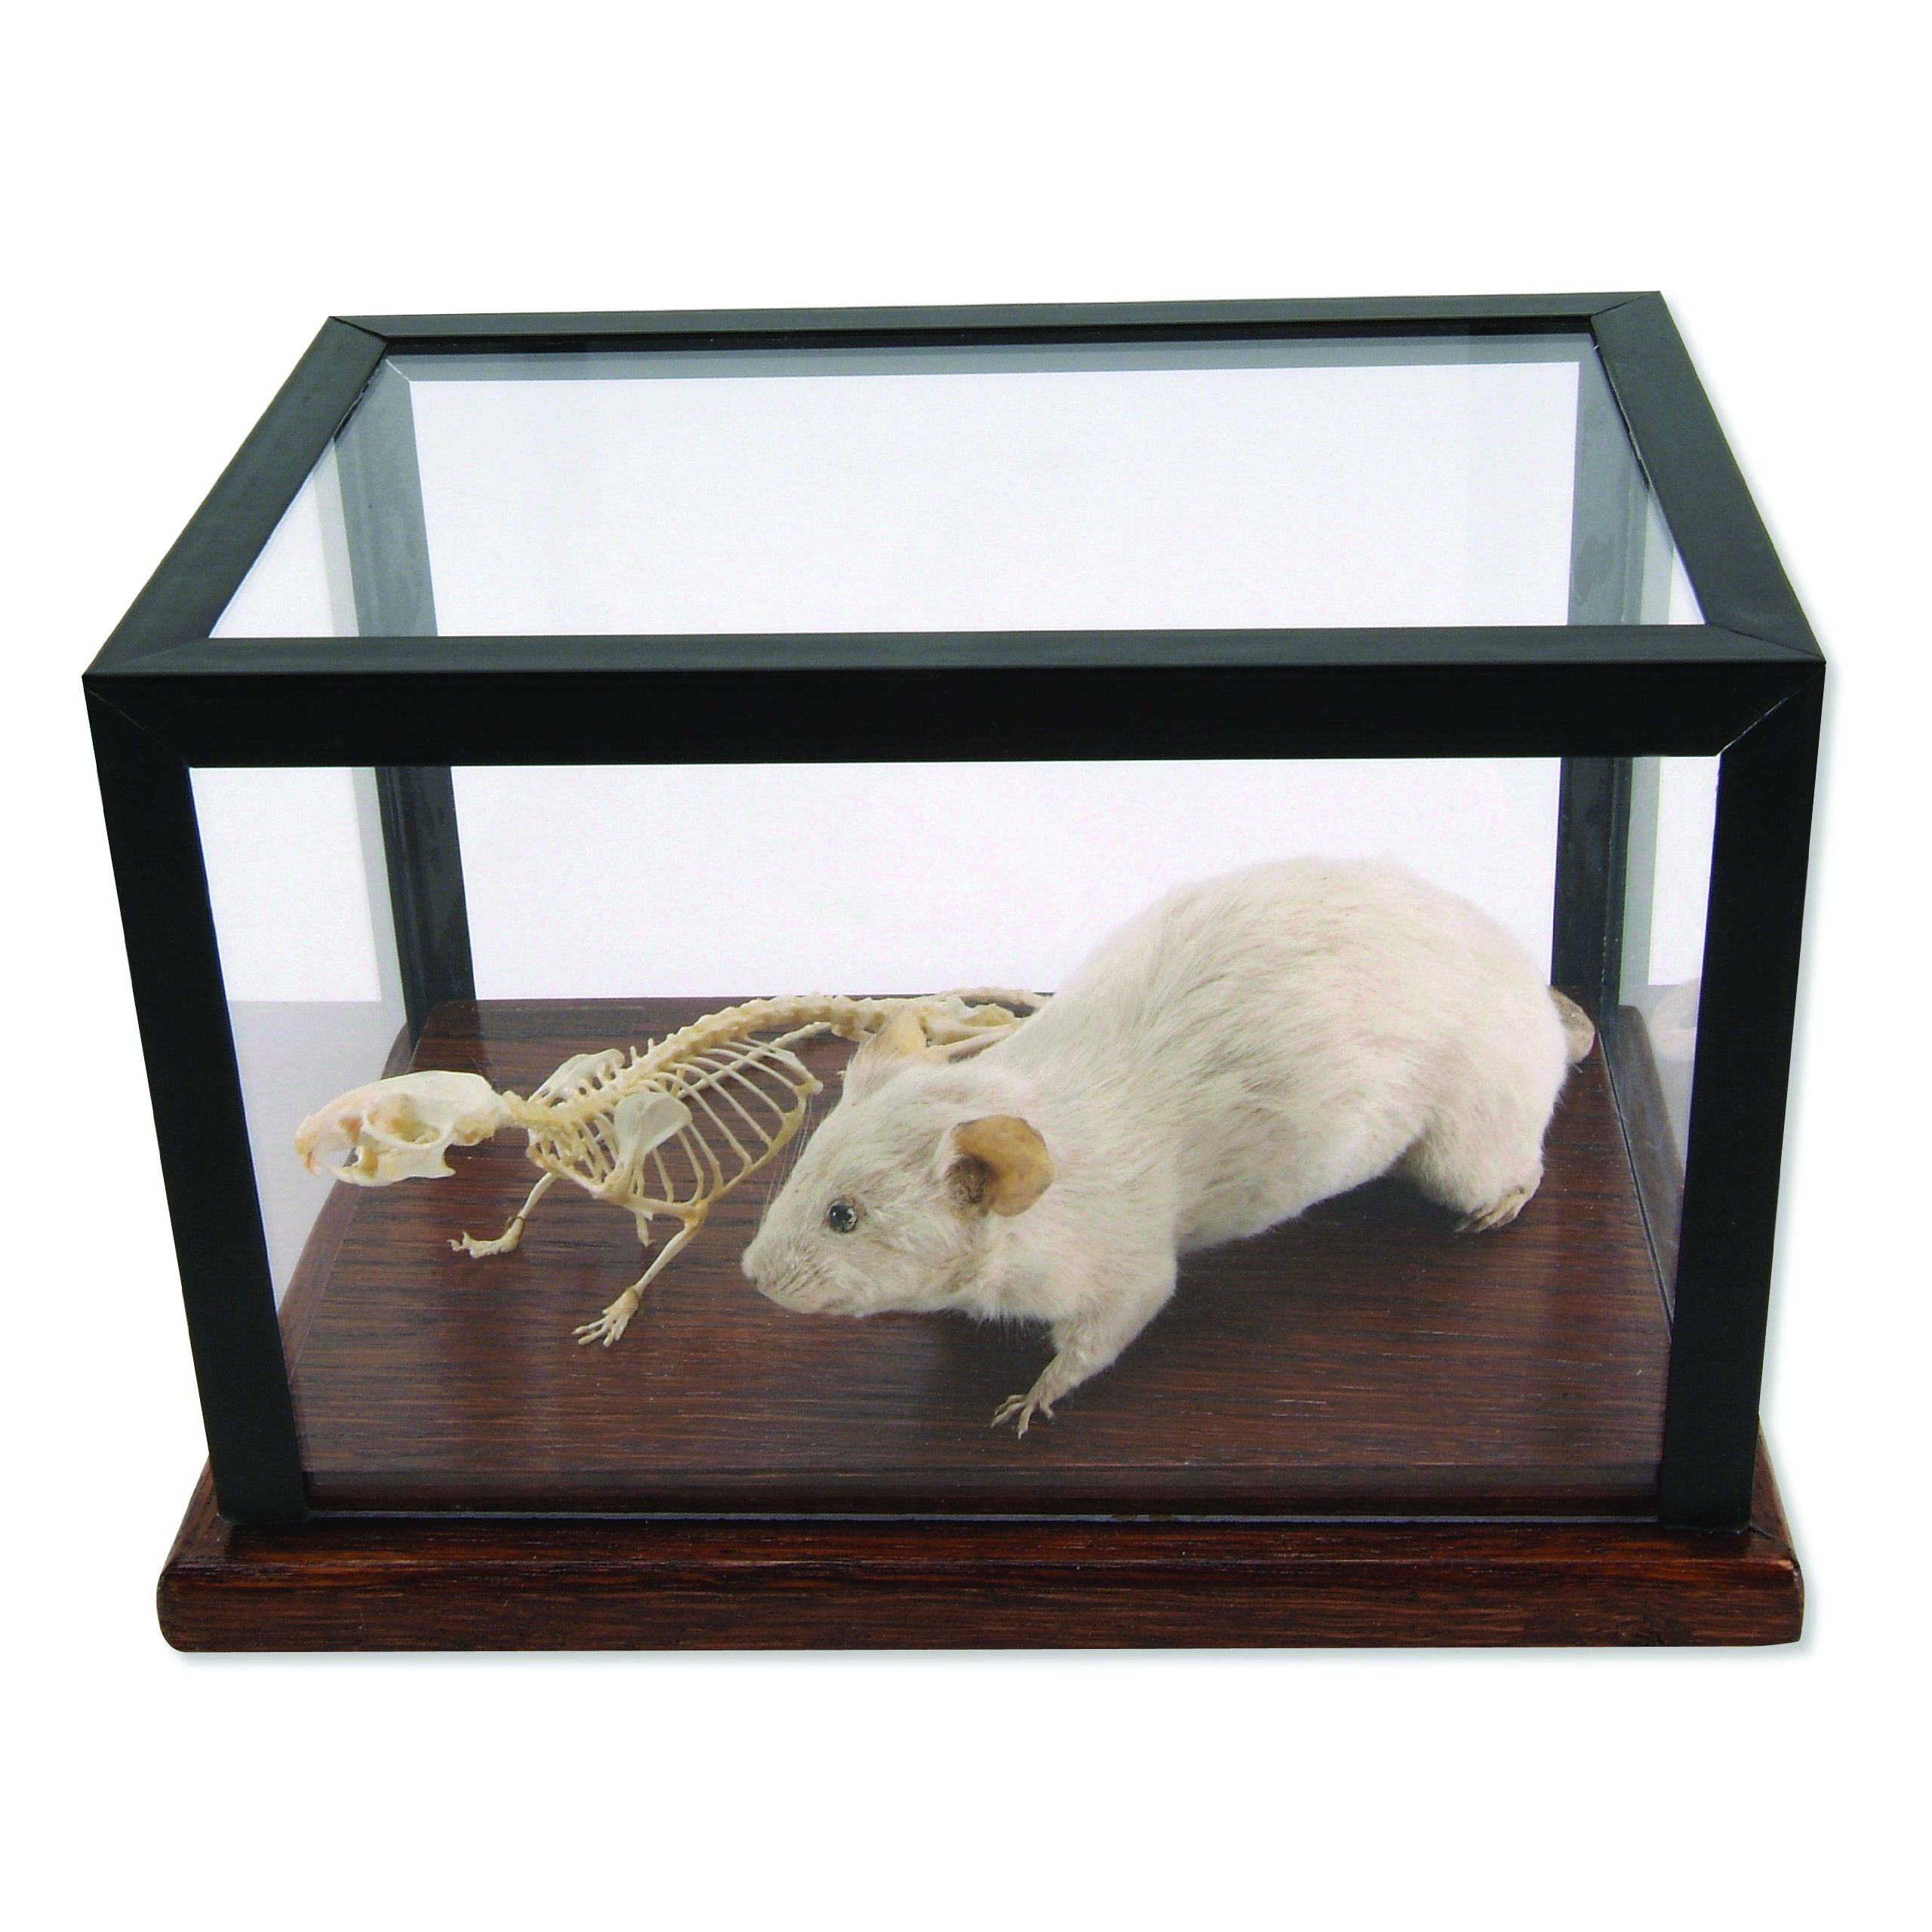 3B Scientific T31001 Mouse Skeleton and Stuffed Mouse Display